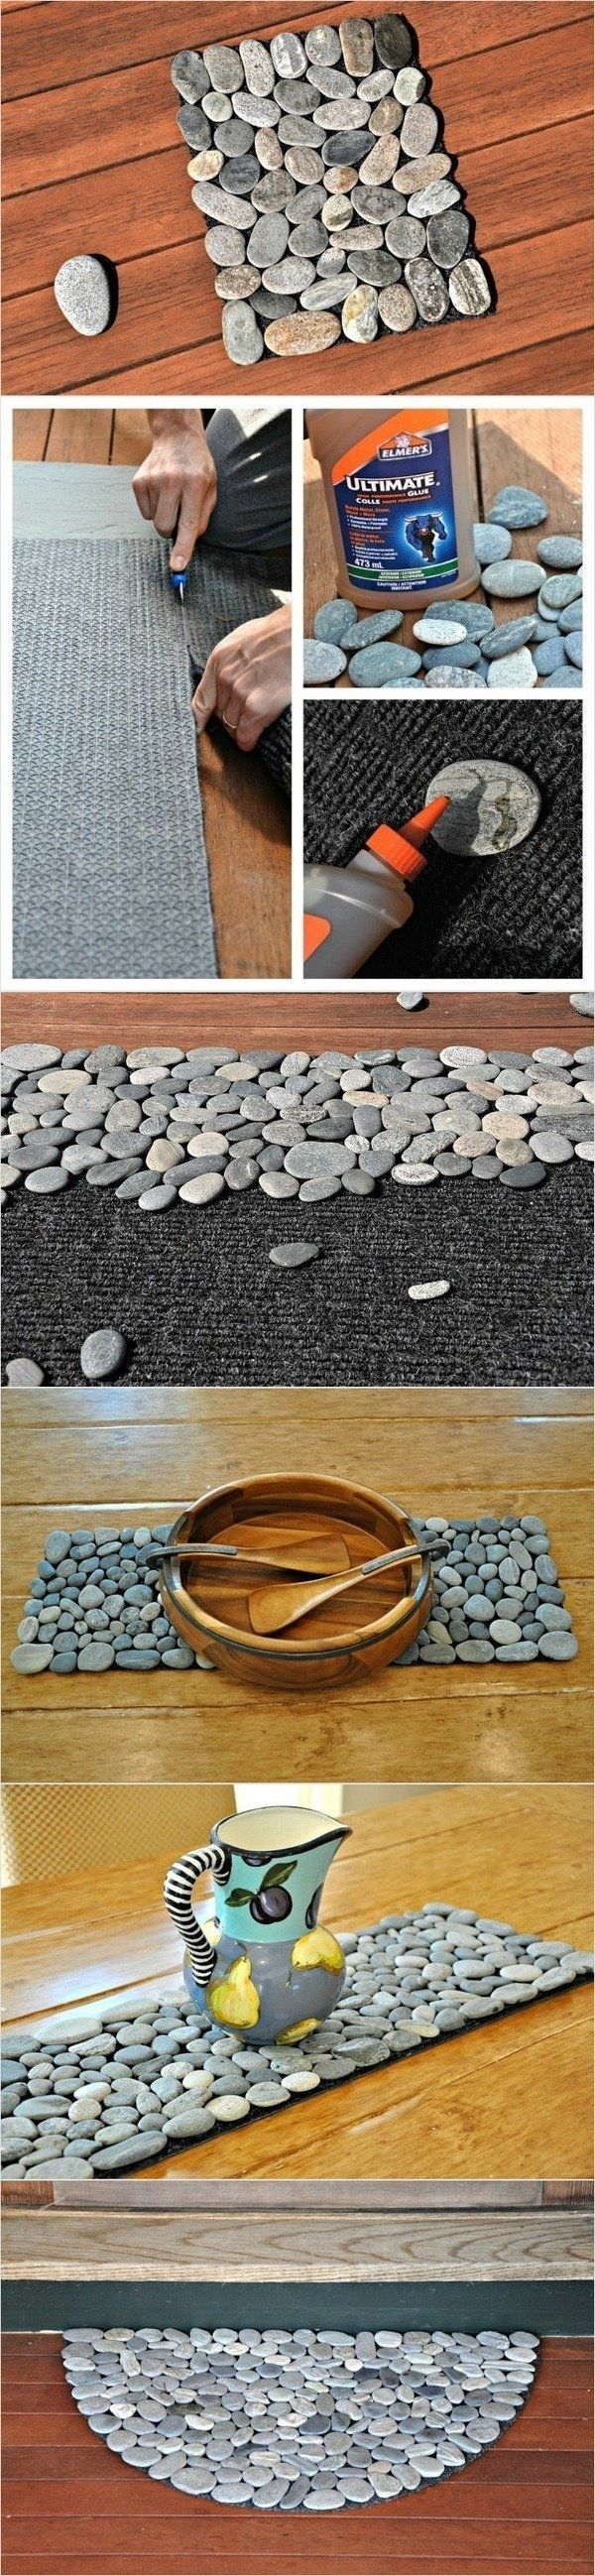 31 Diy Ideas That You Need Today Idea 13